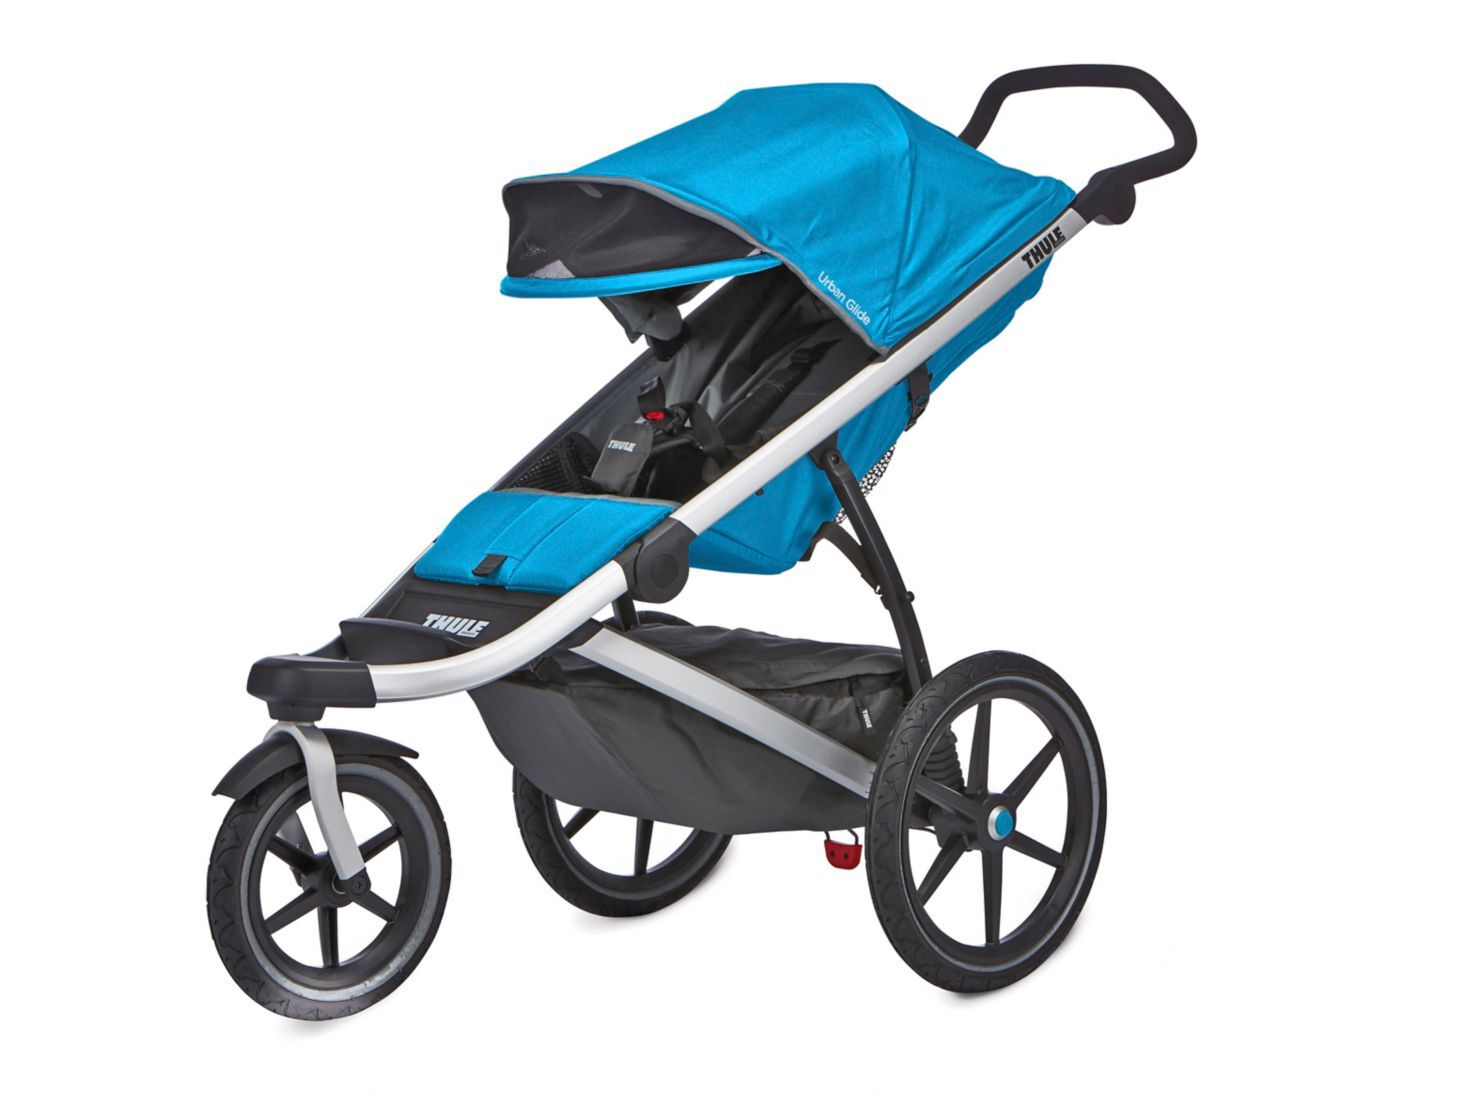 baa37a43d Niños Coches Coches Paragua y Paseo Coche Urban Glide Azul Thule. Coche%20Urban%20Glide%20Azul%20Thule%2C%2Chi-res  ...